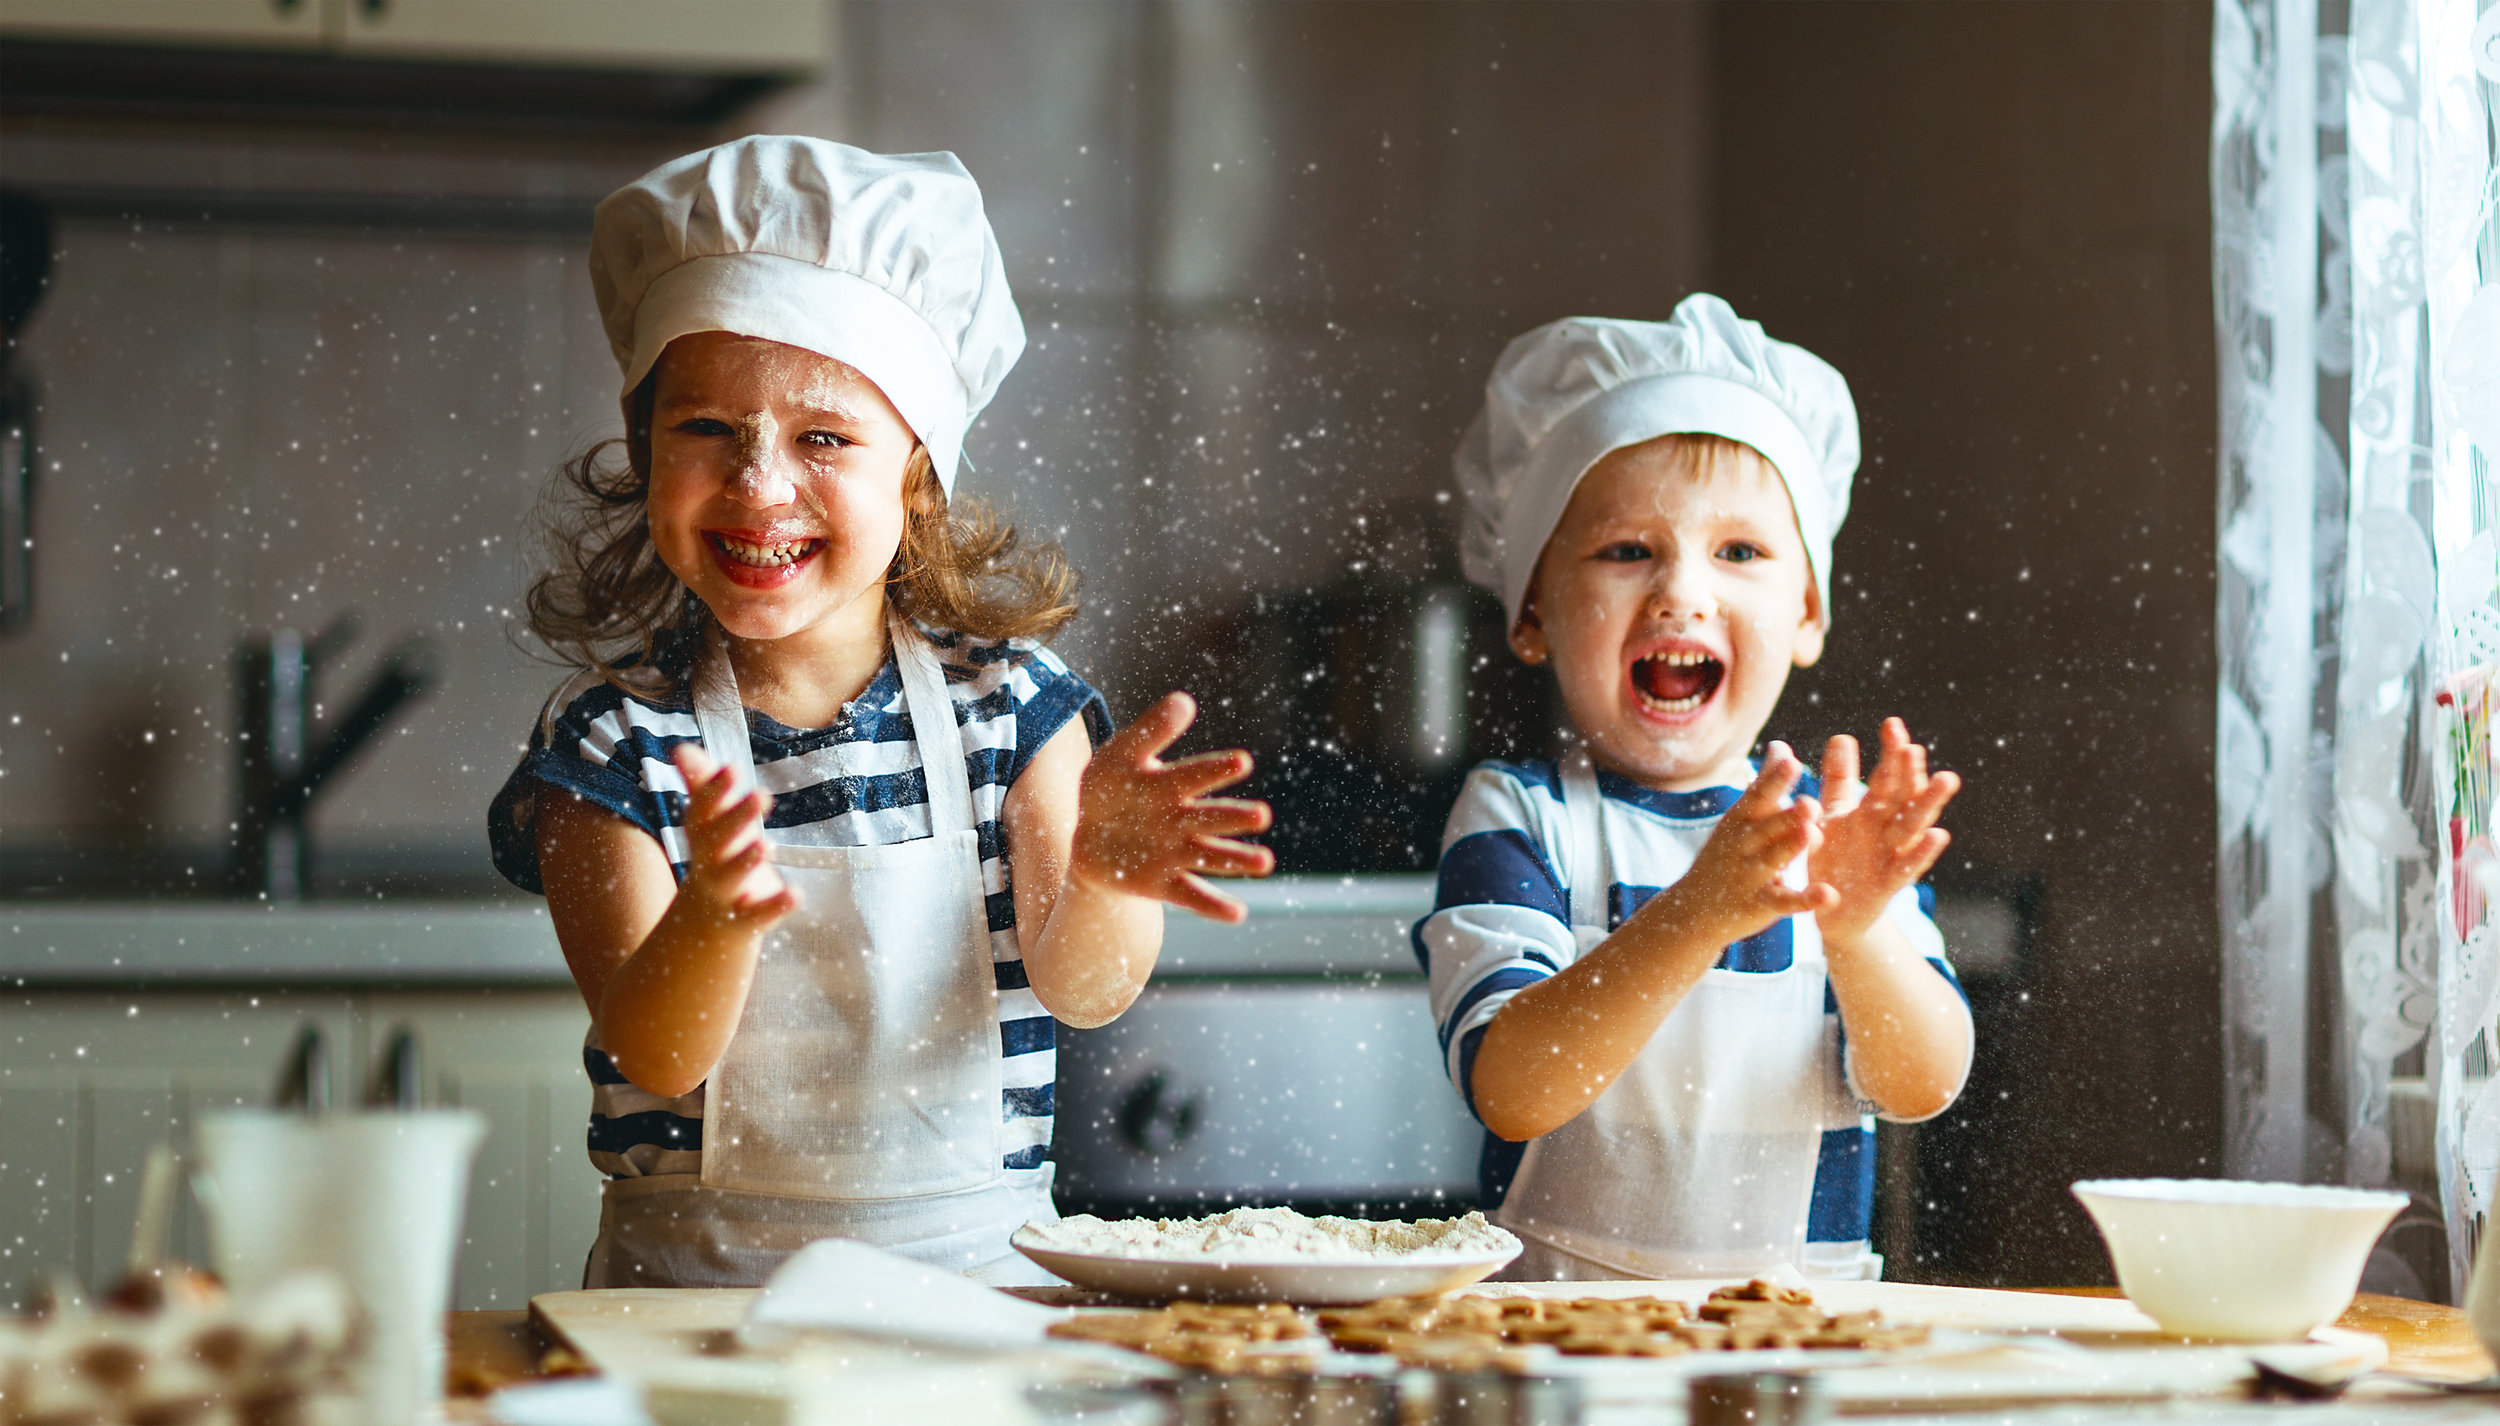 kids clapping flour kitchen.jpg